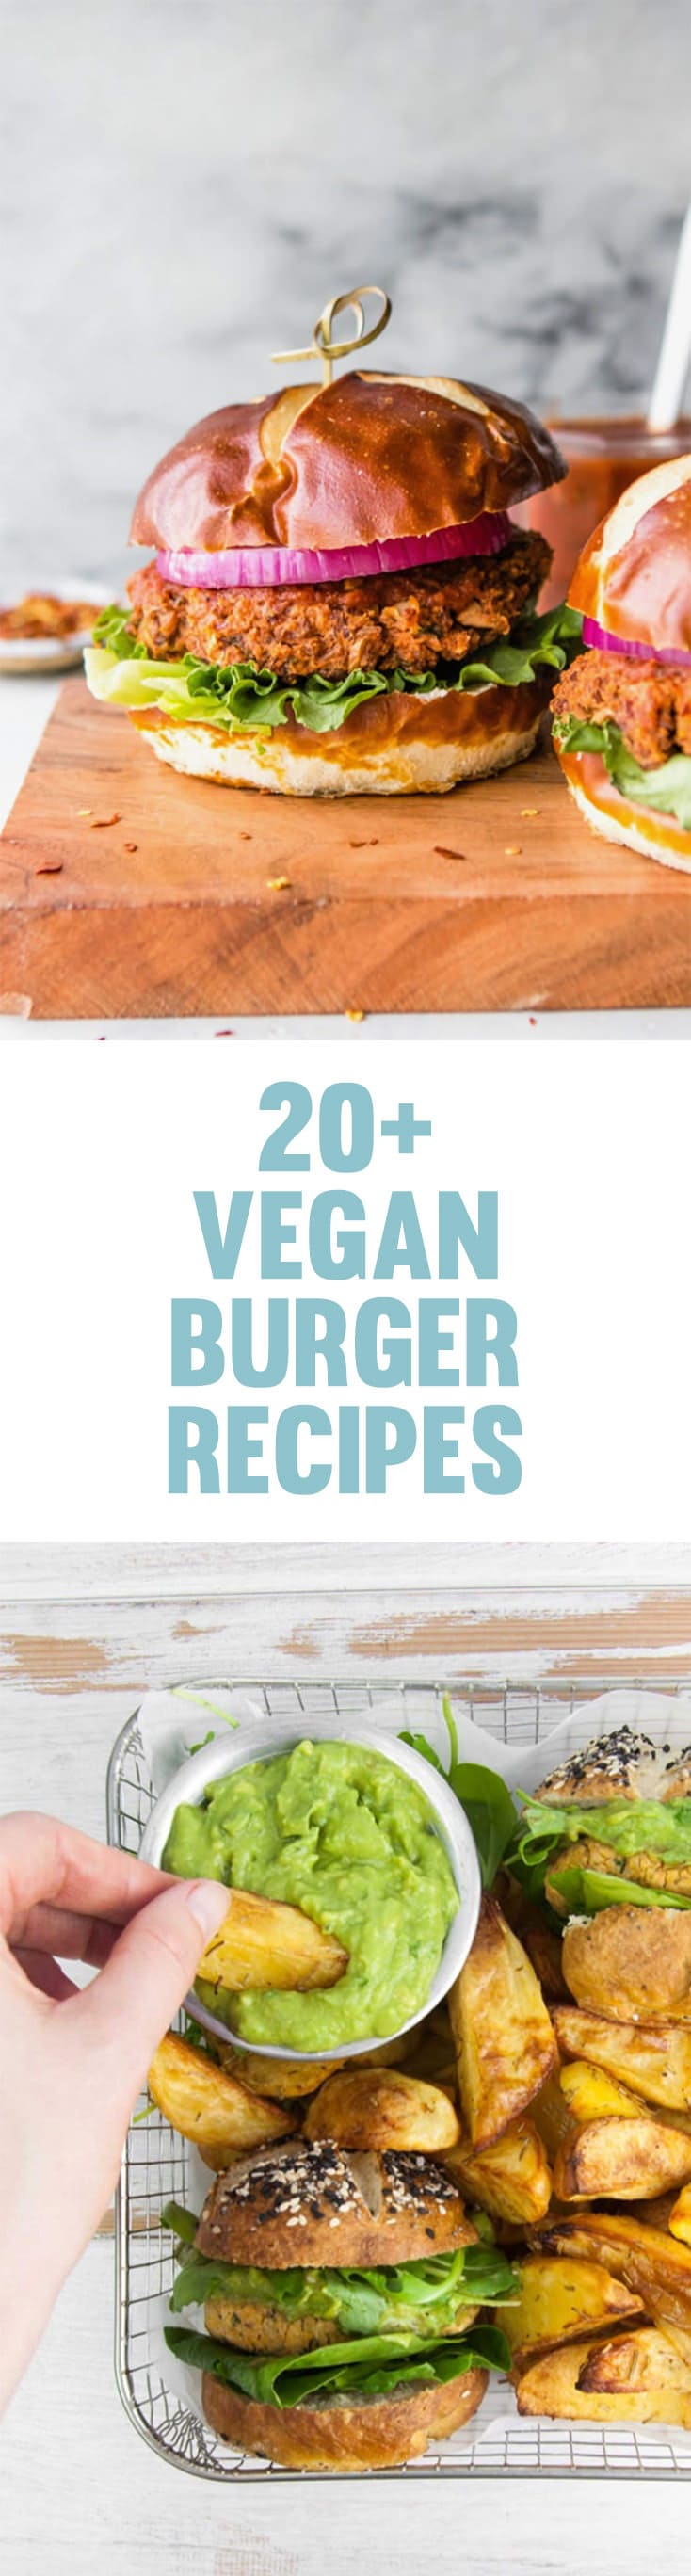 You'll love these Vegan Burgers! Including Copycat In-N-Out Burger, Grilled Huli-Huli Burger, Falafel Burger, Vegan Fish Burger and many more! | ElephantasticVegan.com #vegan #burger #recipes